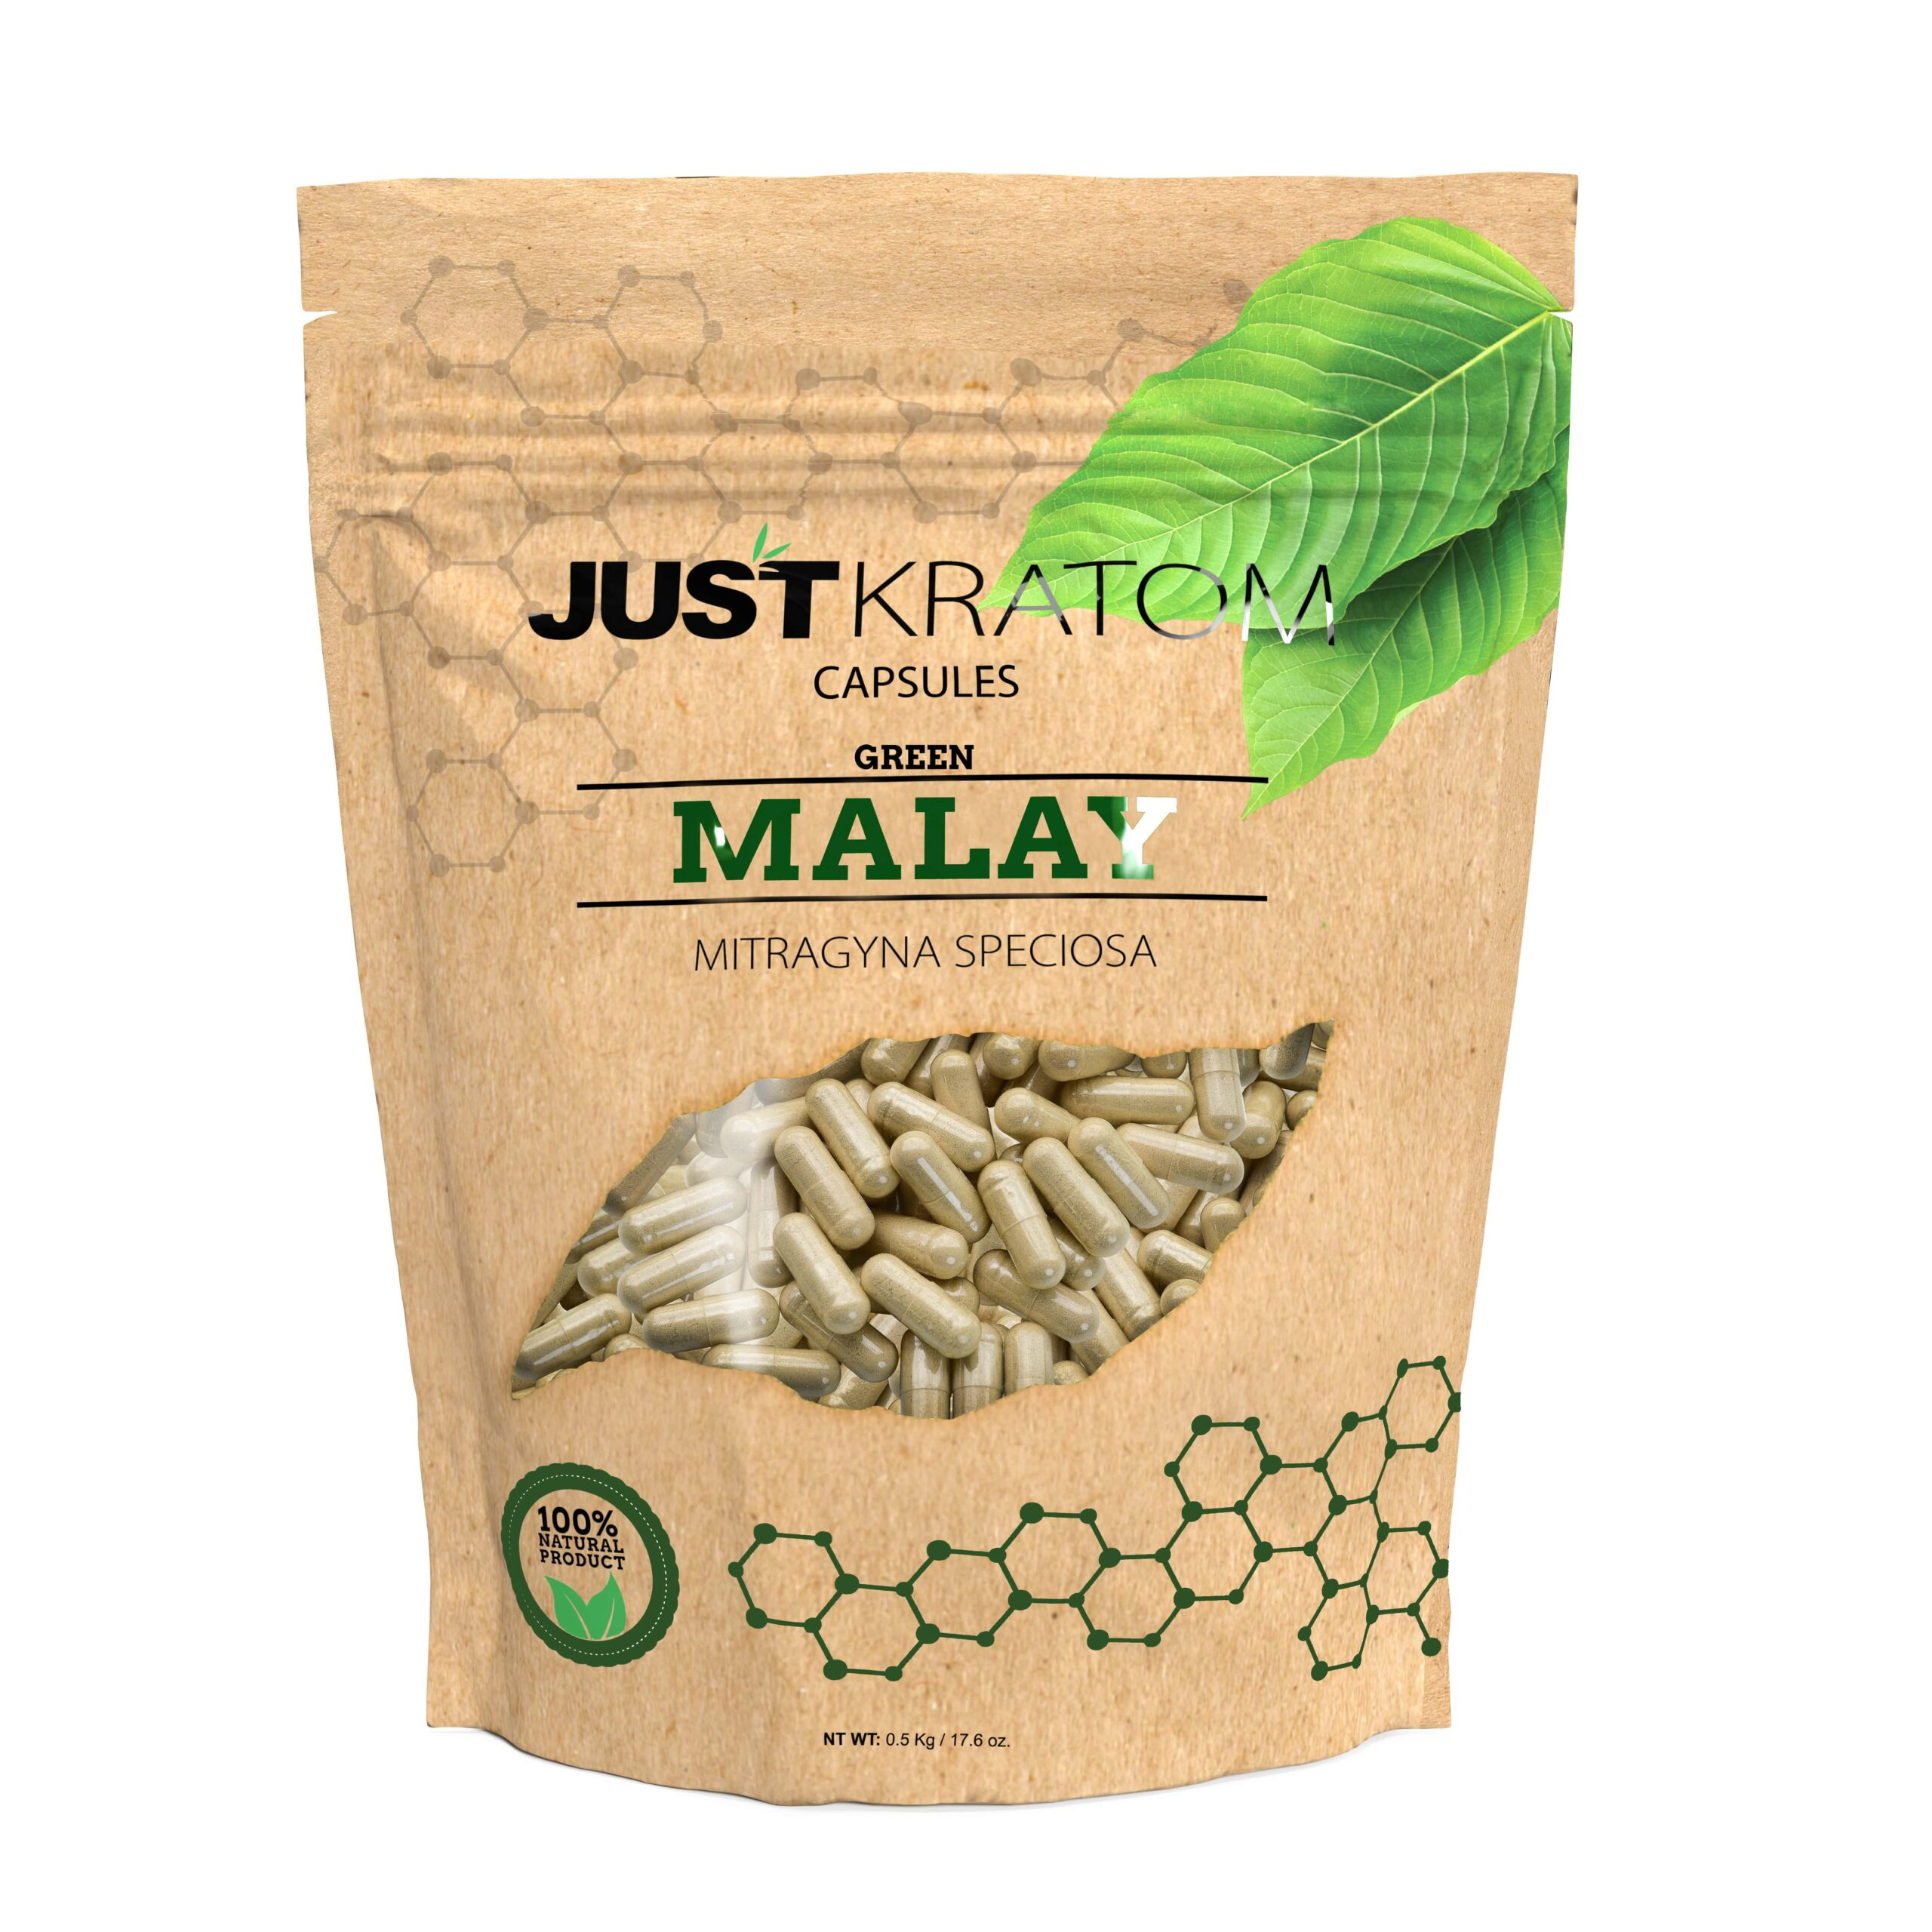 Where To Buy Kratom In Florida